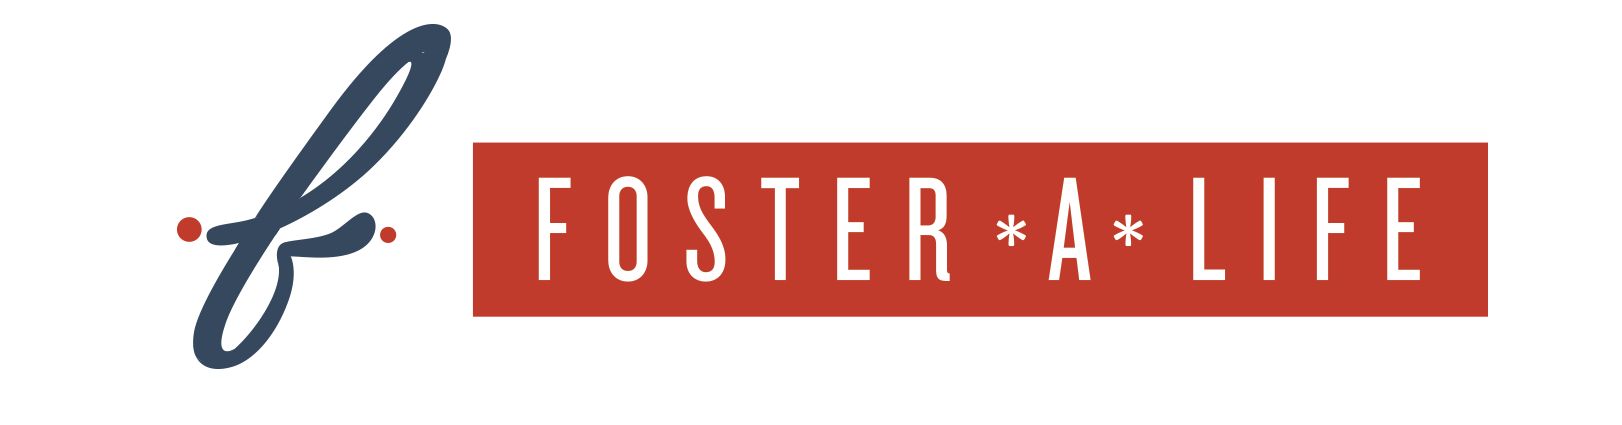 Foster*A*Life | Lubbock, Texas